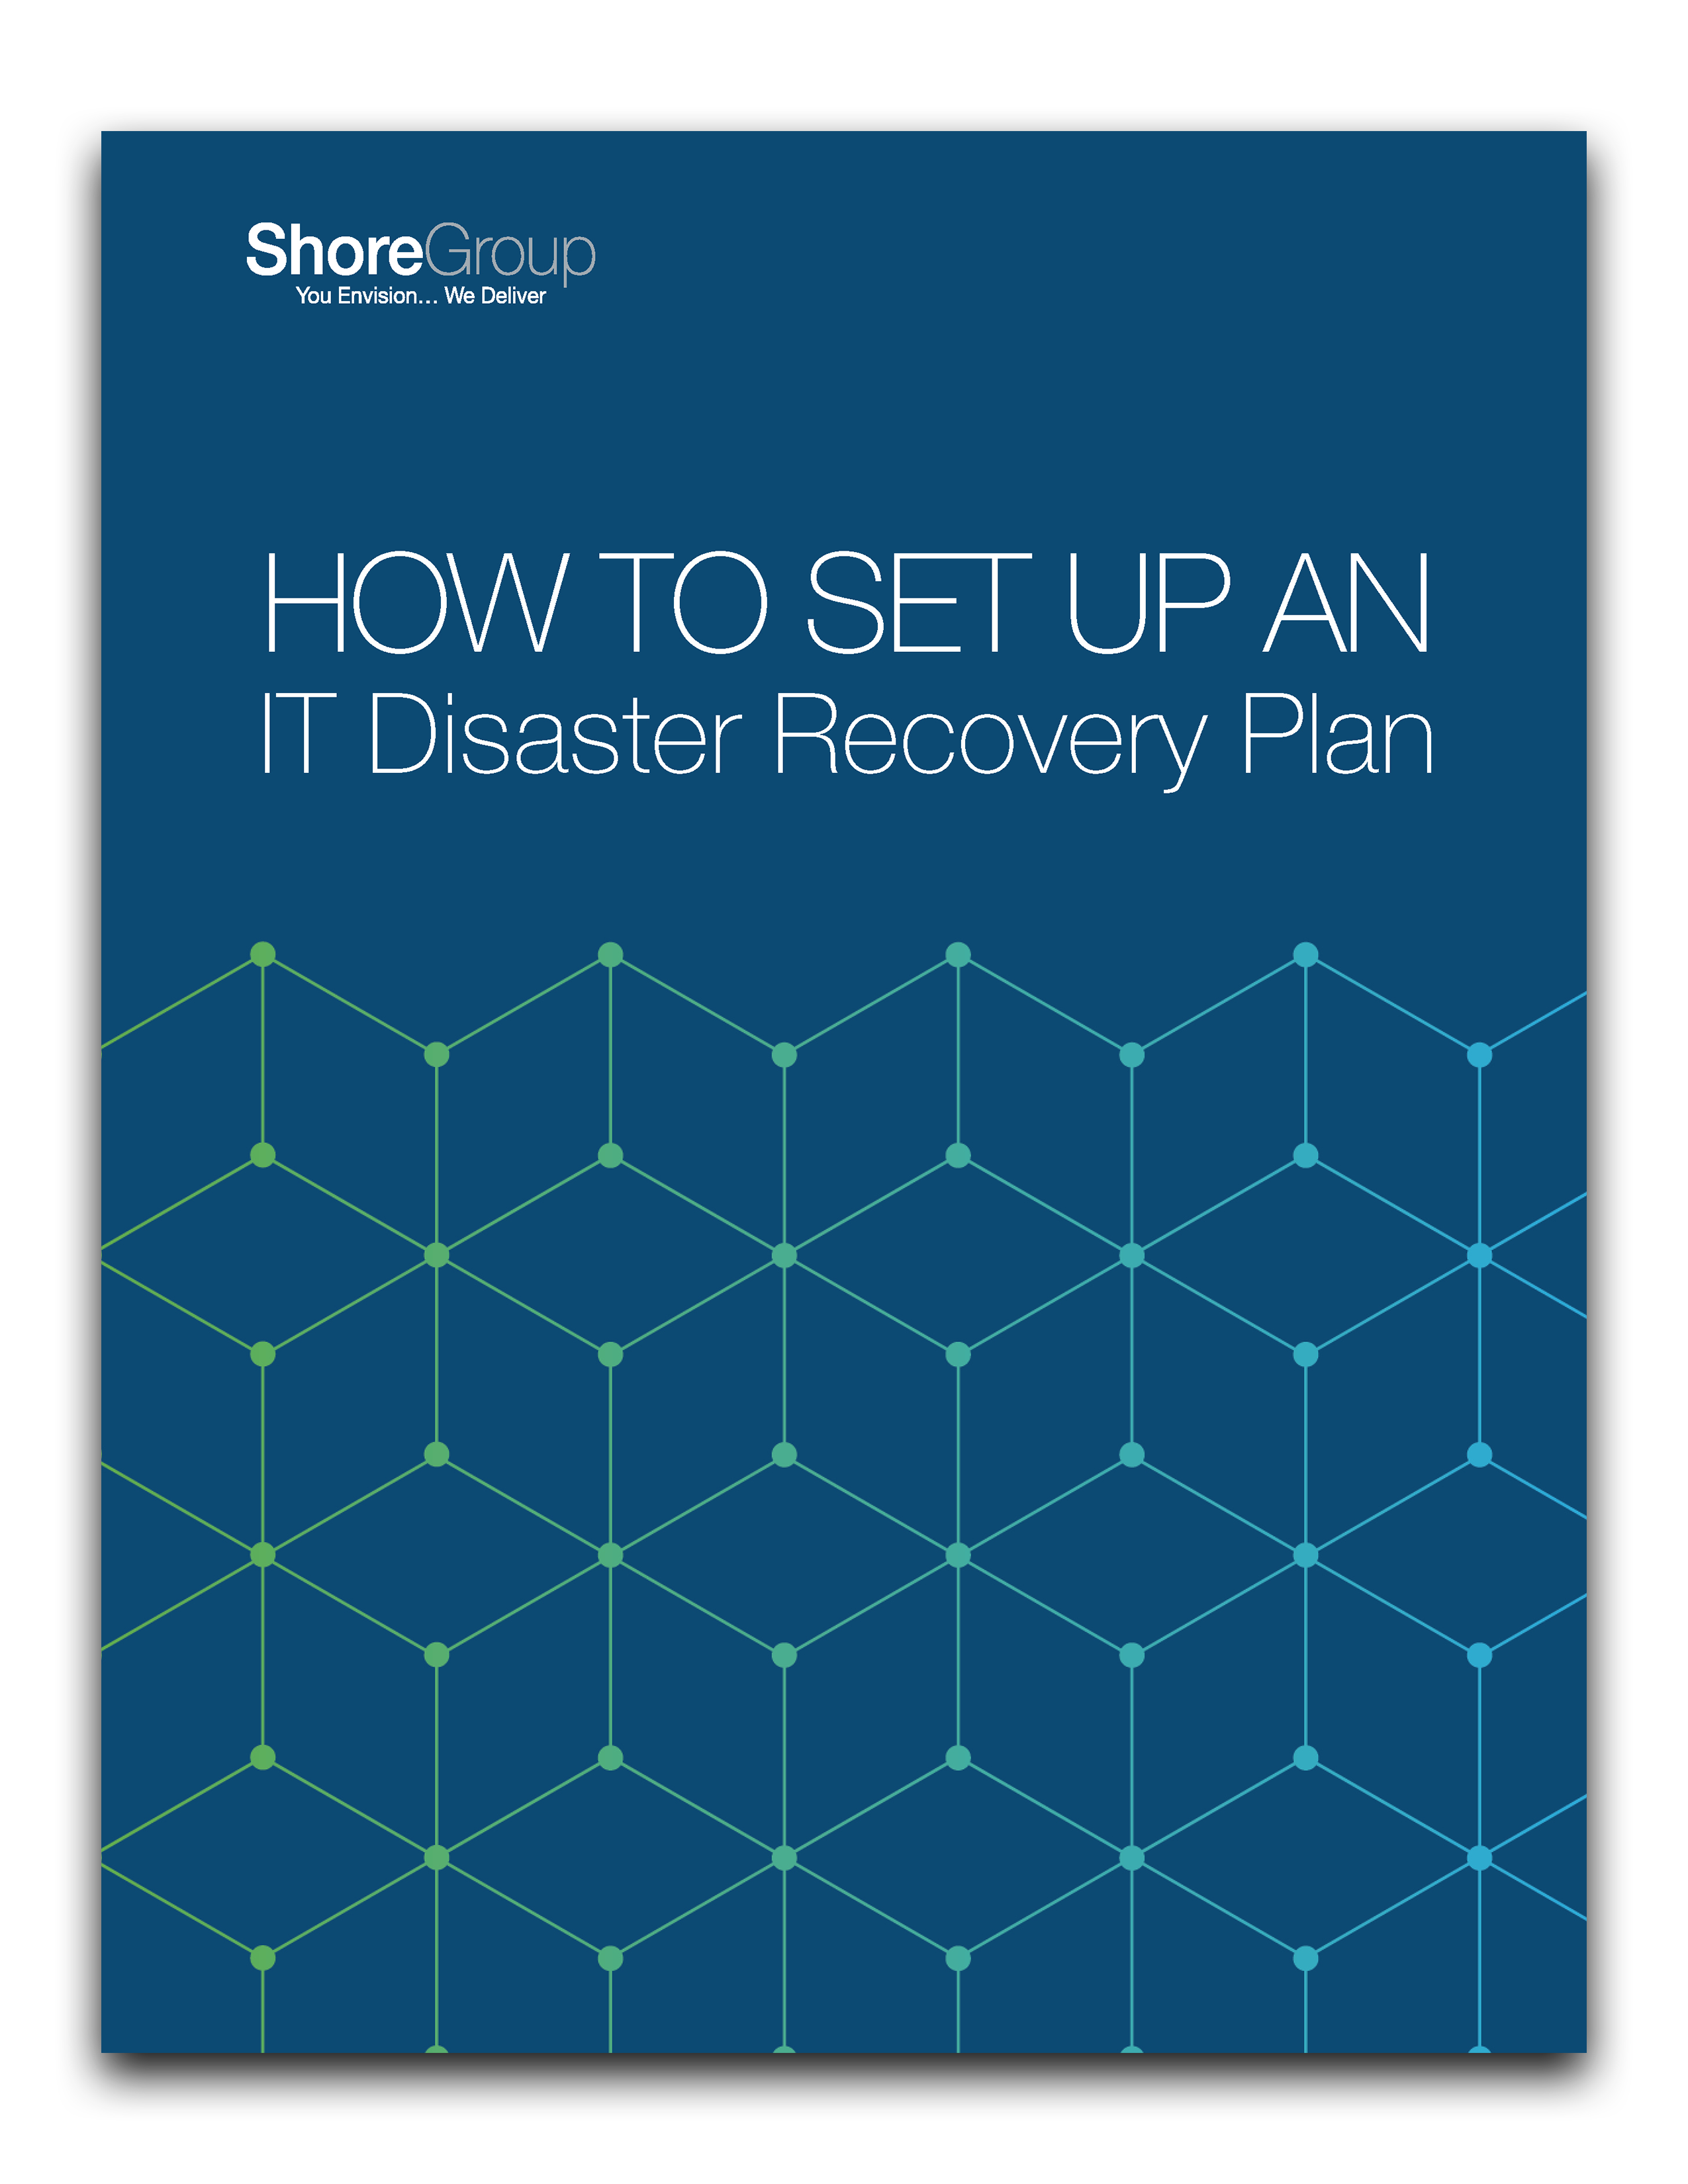 How_to_Set_Up_an_IT_Disaster_Recovery_Plan_Whitepaper_3D_Cover-1.png